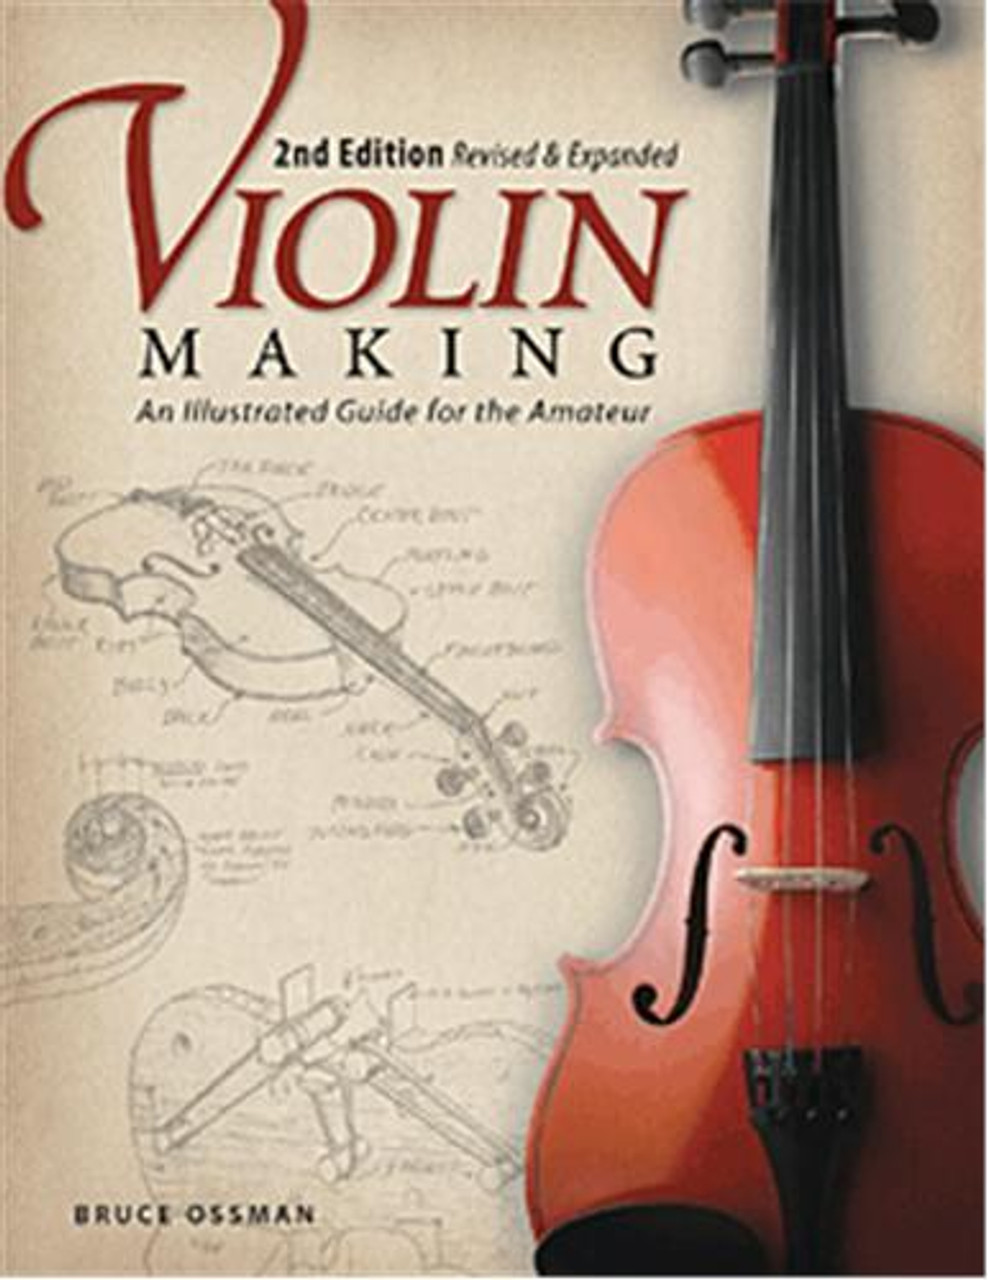 Fox Chapel Publishing Violin Making, Second Edition Revise and Expanded